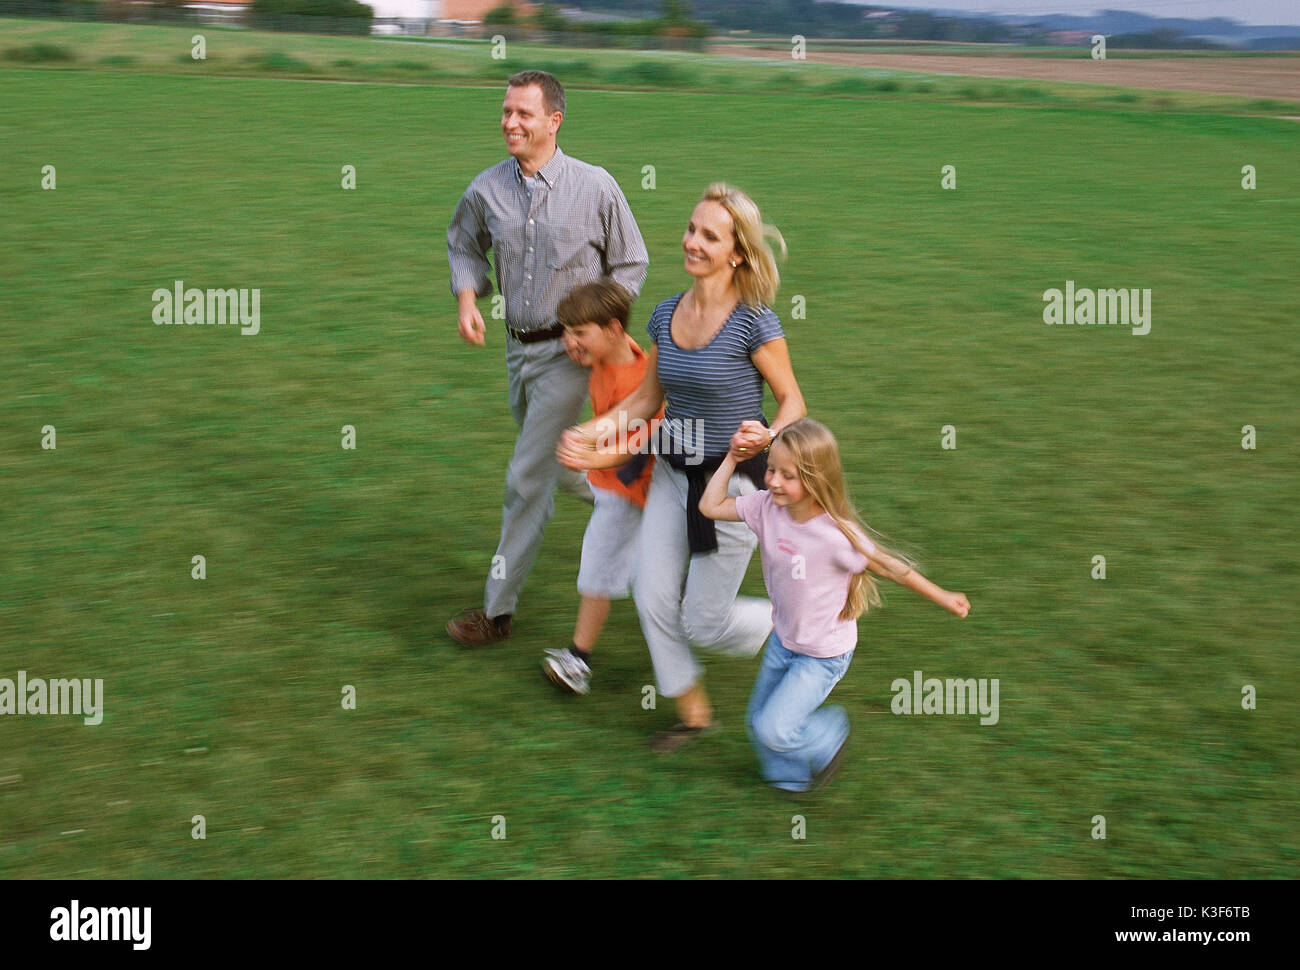 Young family runs hand in hand over a meadow - Stock Image